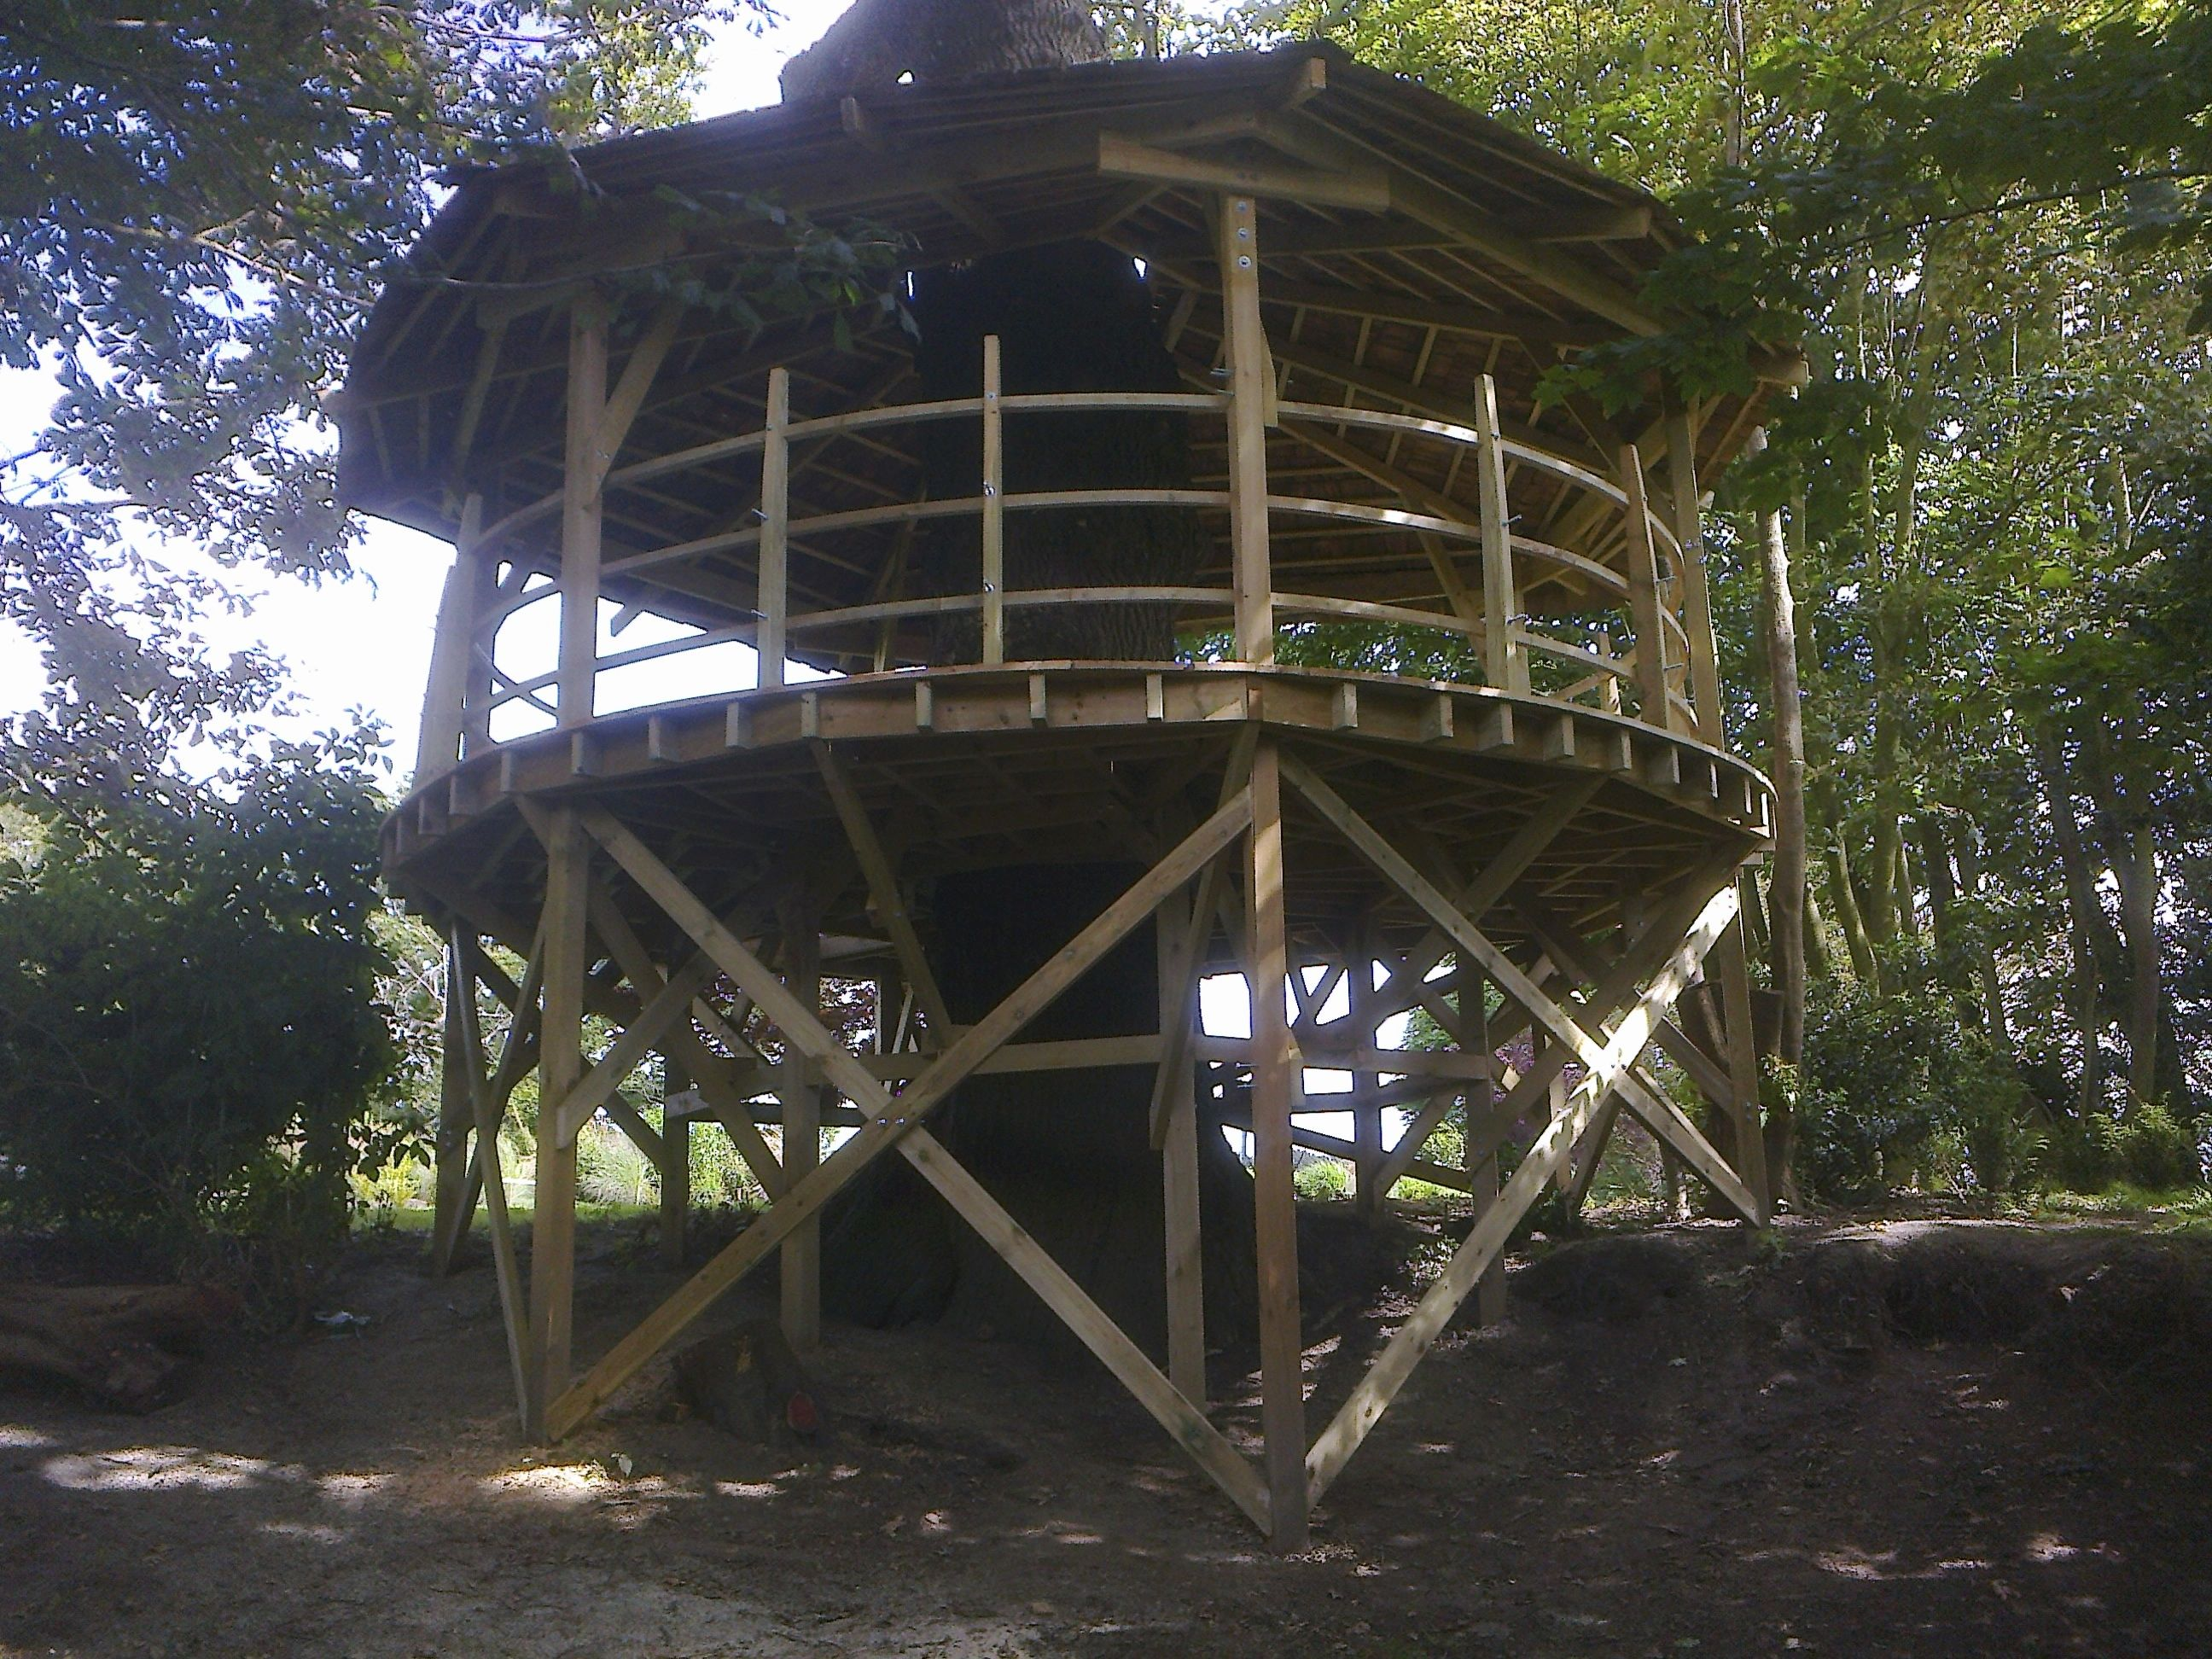 Treehouse platform, Keymer, West Sussex